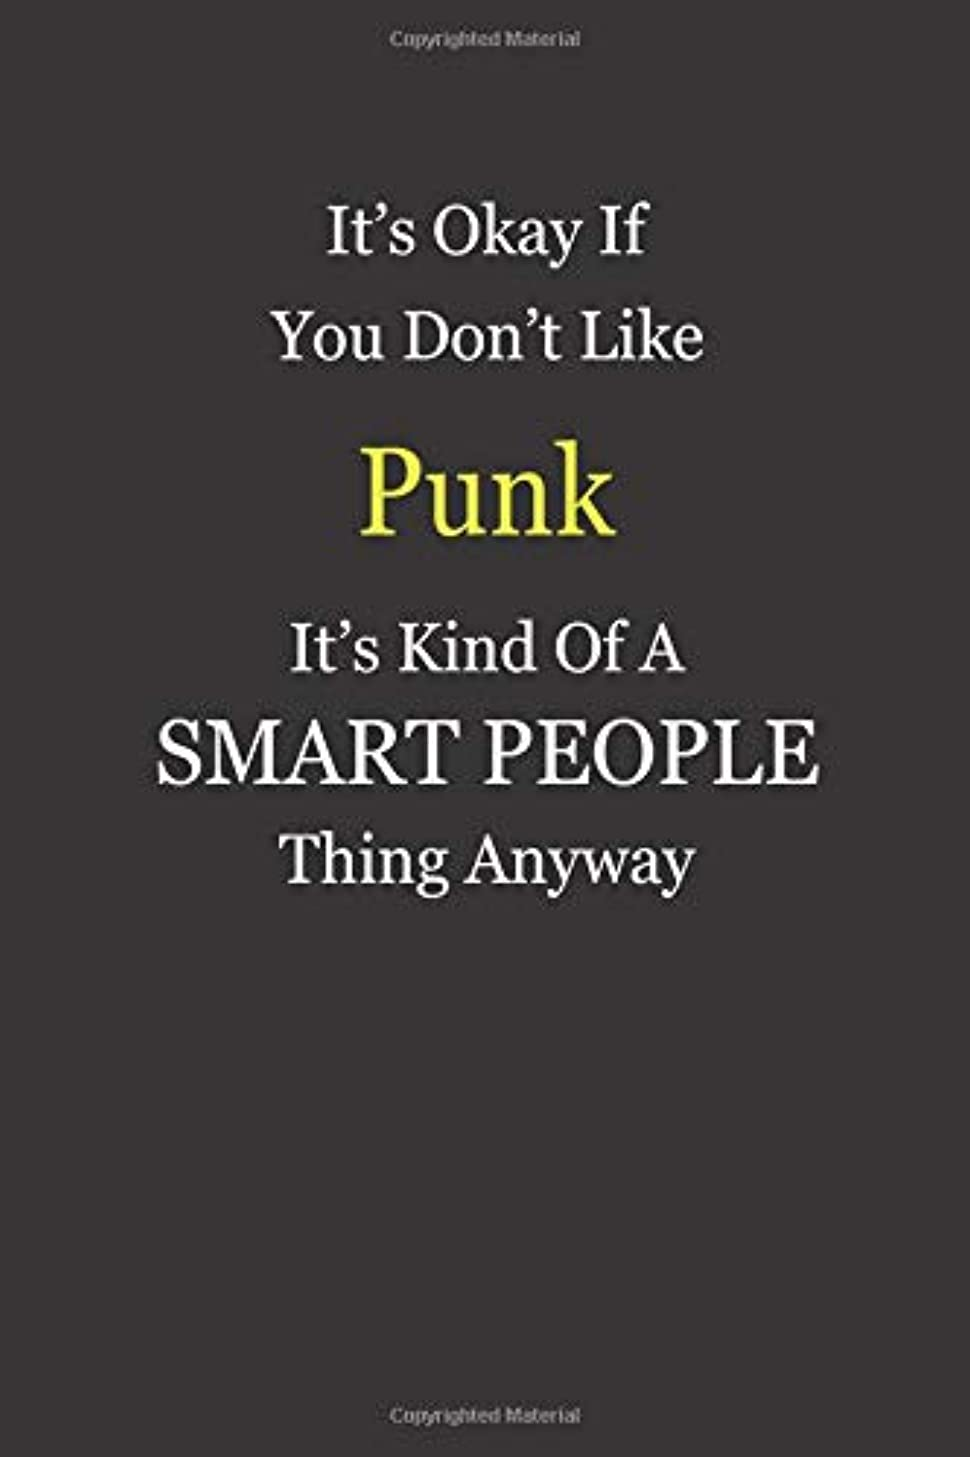 It's Okay If You Don't Like  Punk  It's Kind Of A Smart People Thing Anyway: Blank Lined Notebook Journal Gift Idea